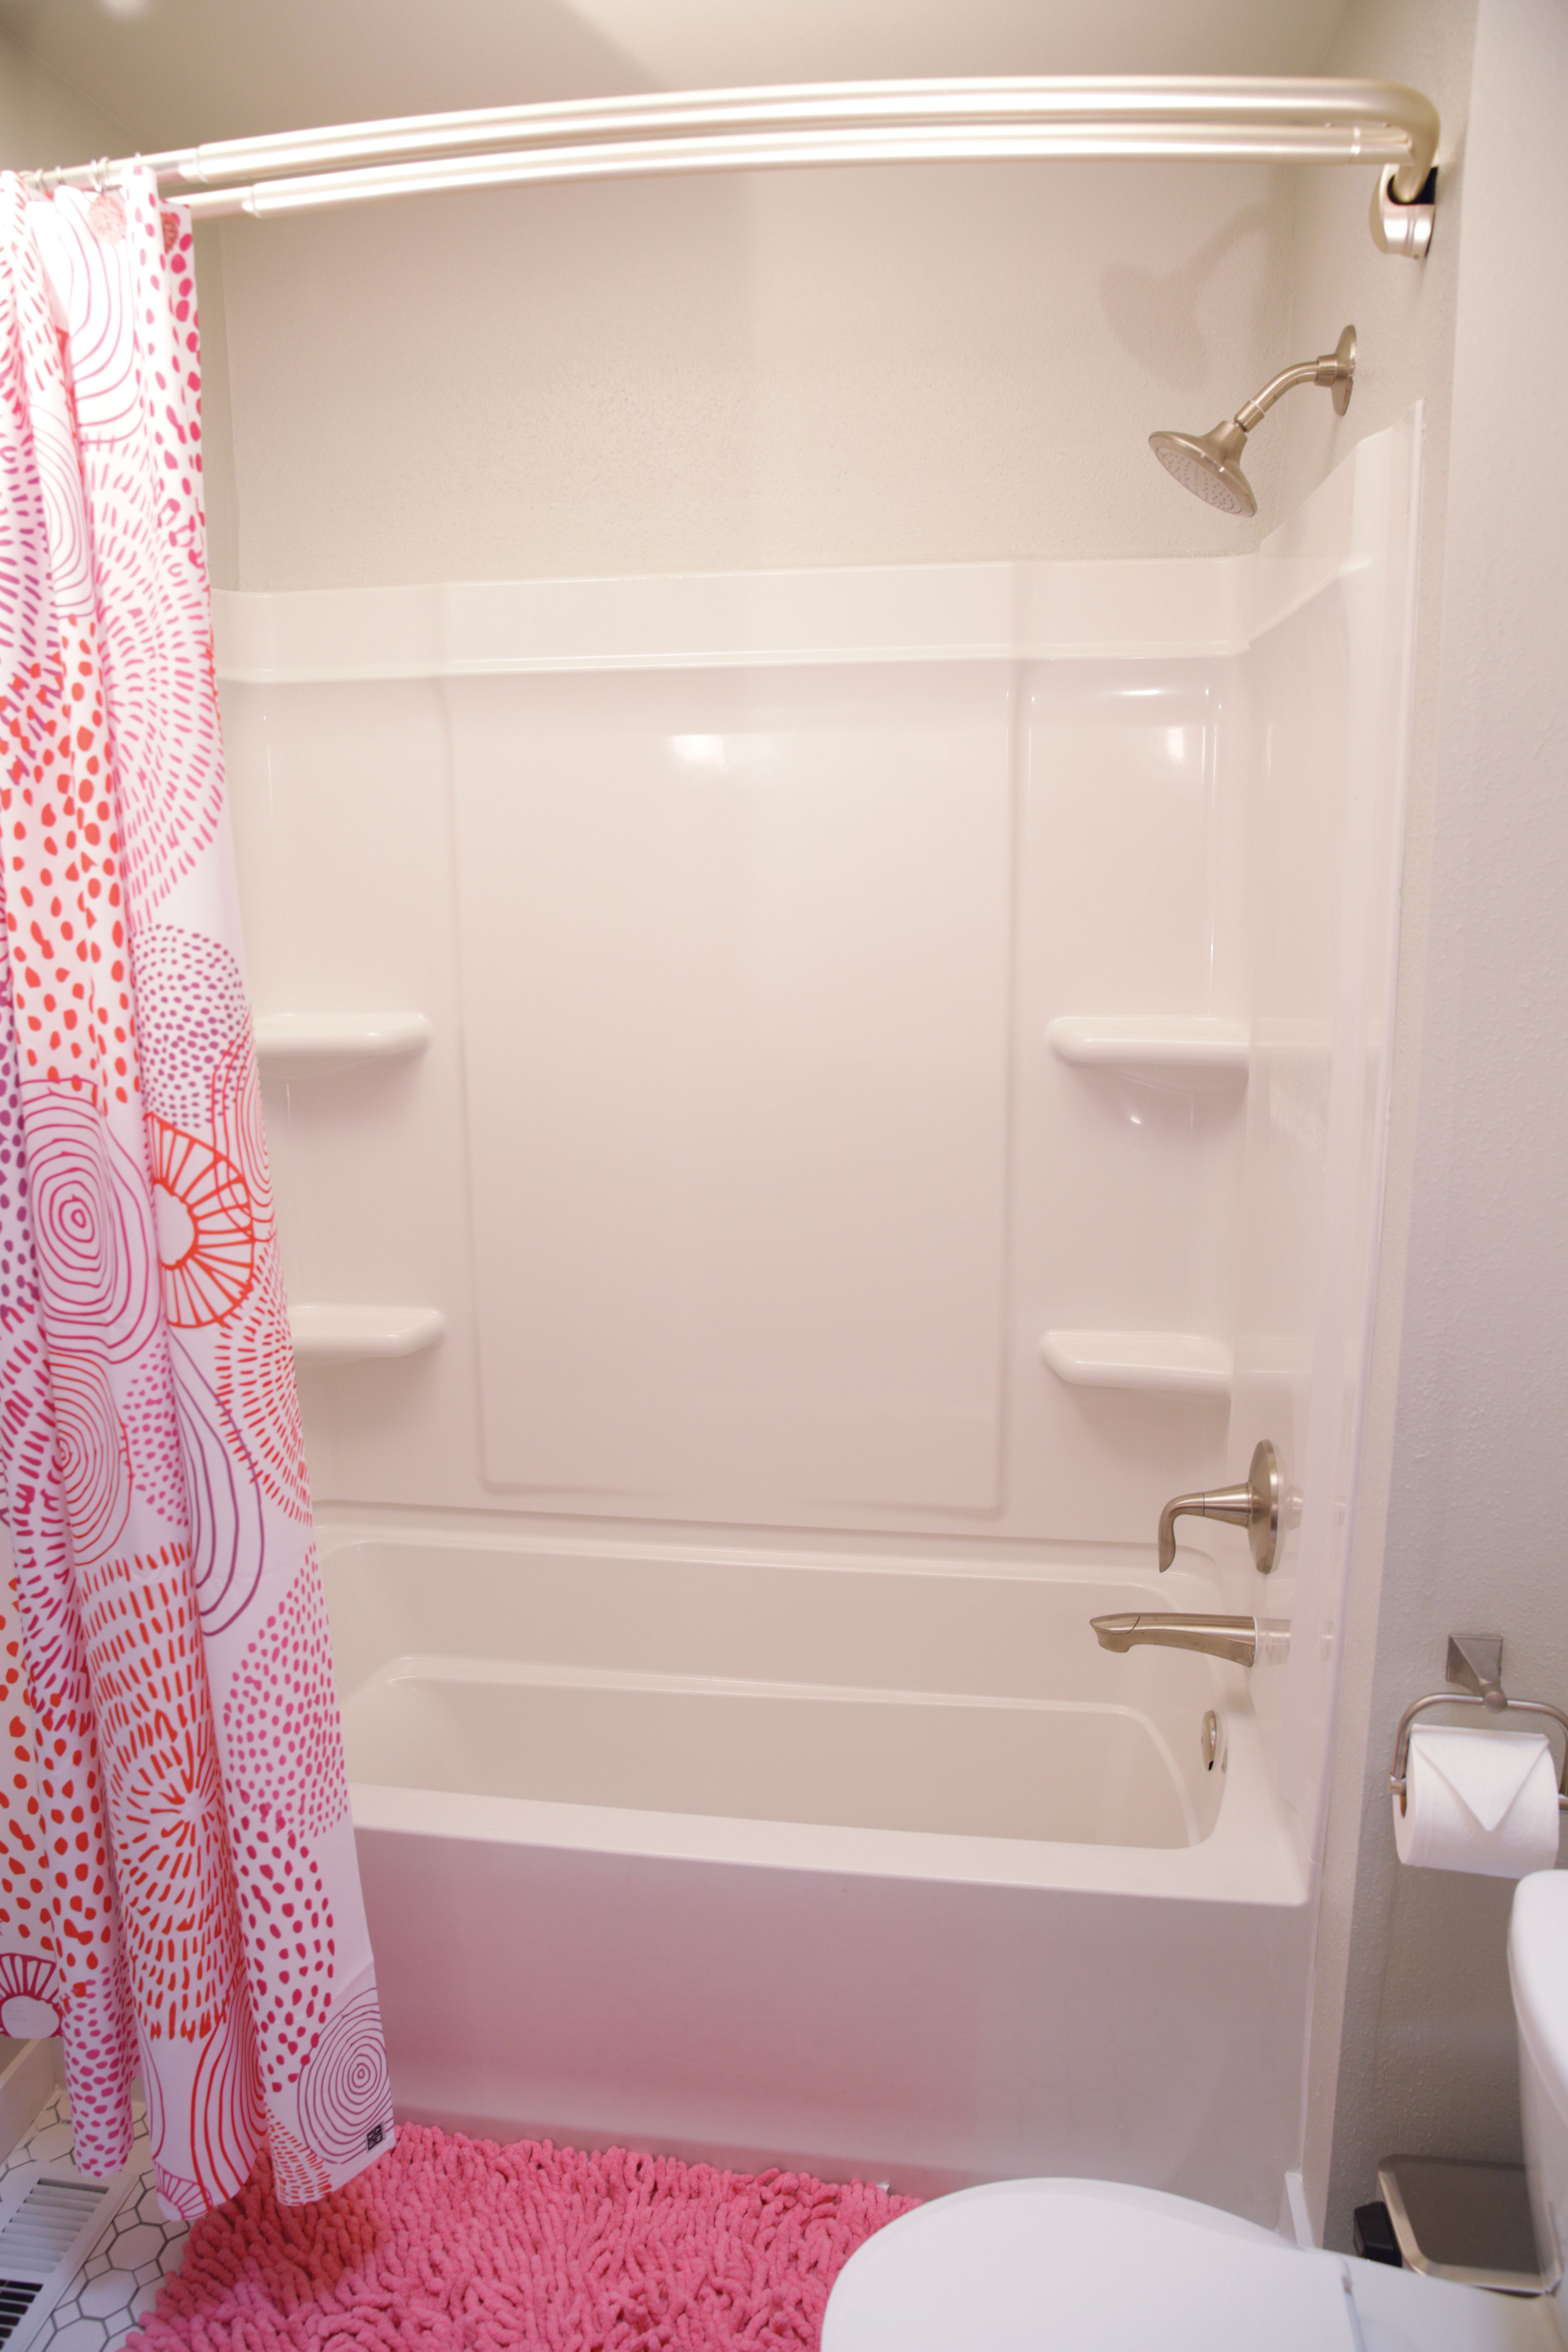 AFTER: The Sterling Ensemble Medley bath/shower was a great choice ...